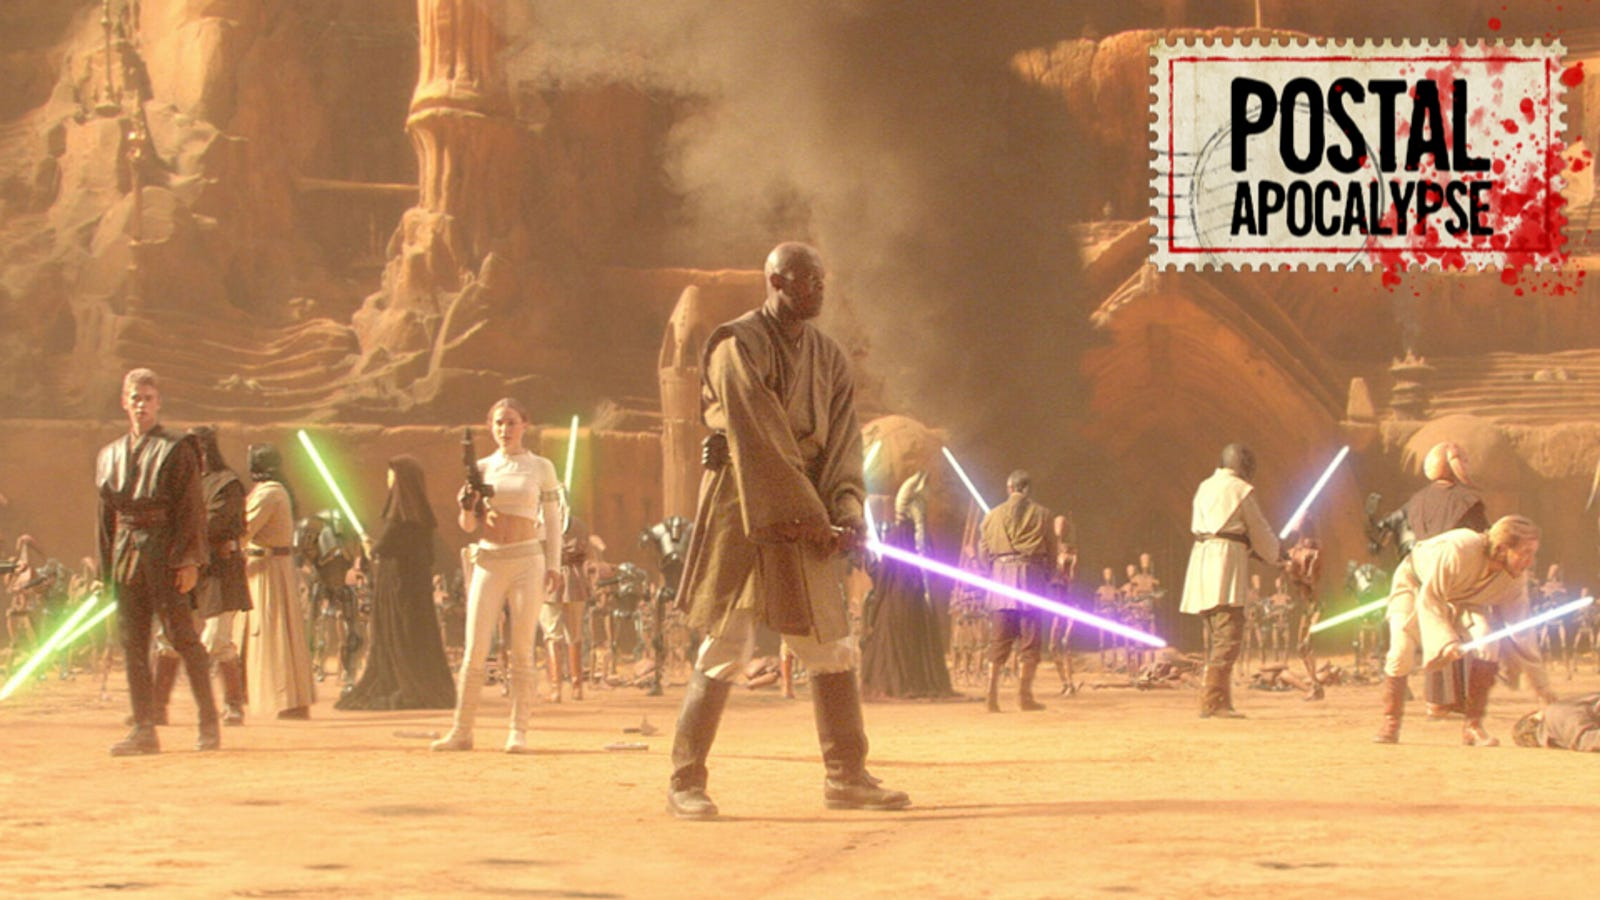 How Another Star Wars Side Story Could Help Make the Prequels Better